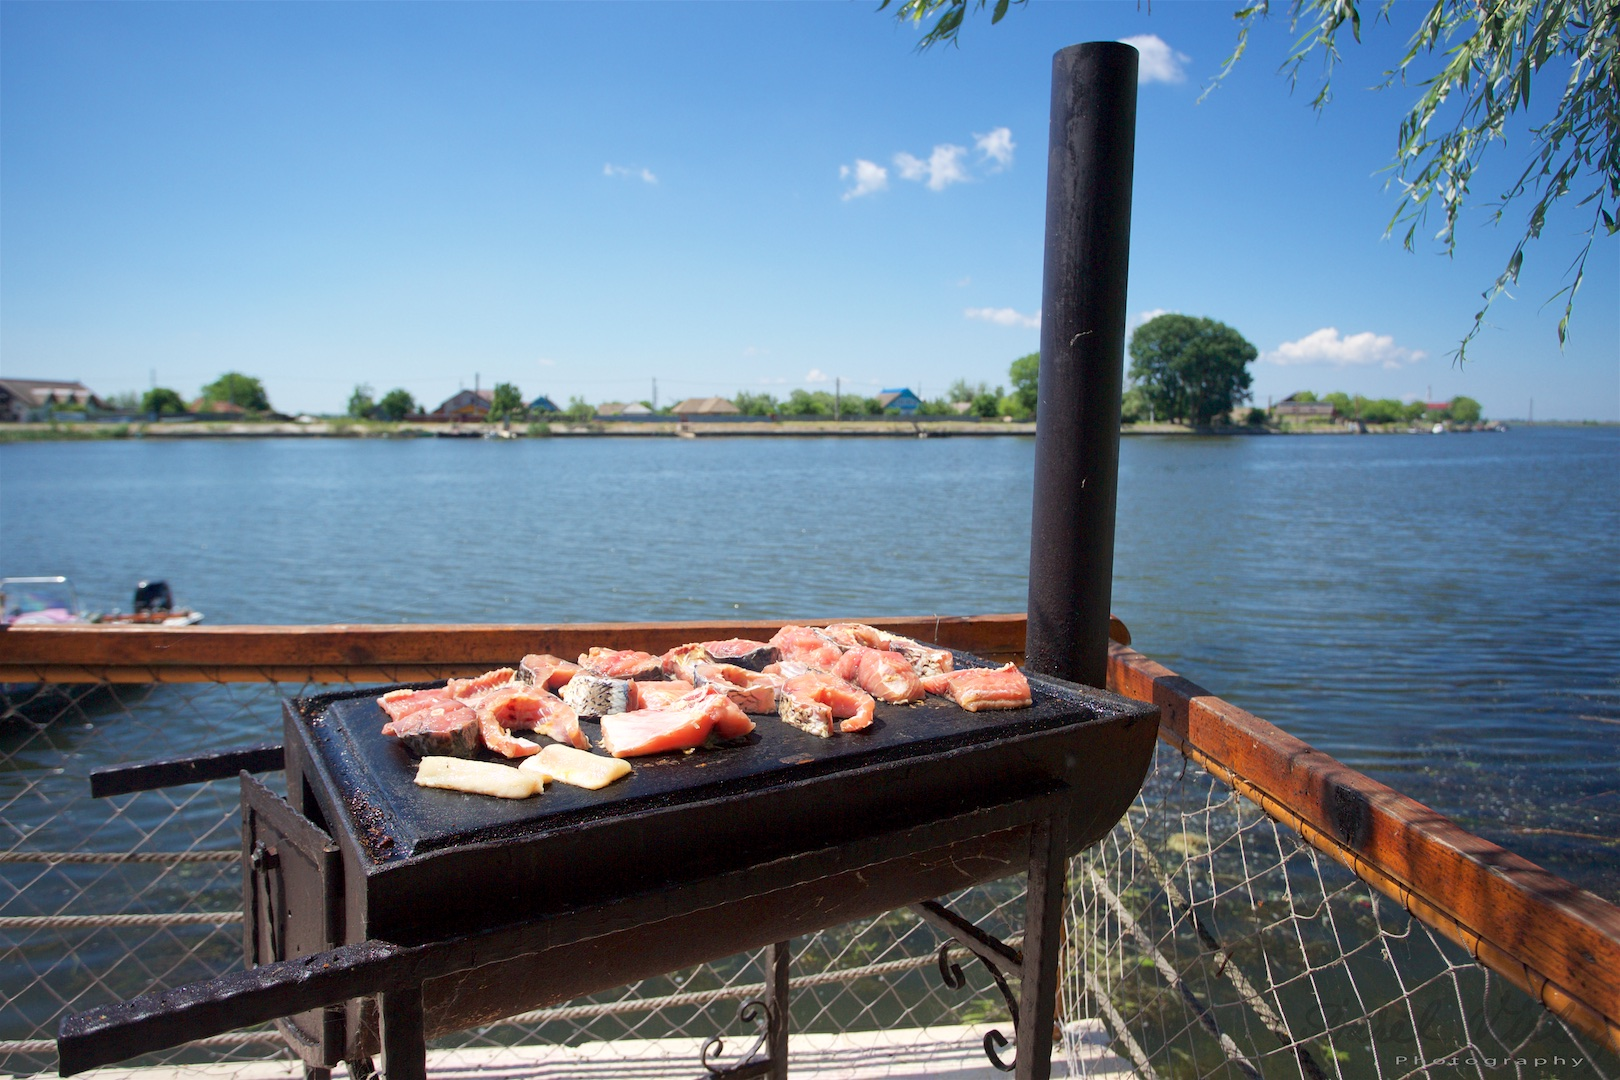 Hob and stove pipe for frying fish in Danube Delta